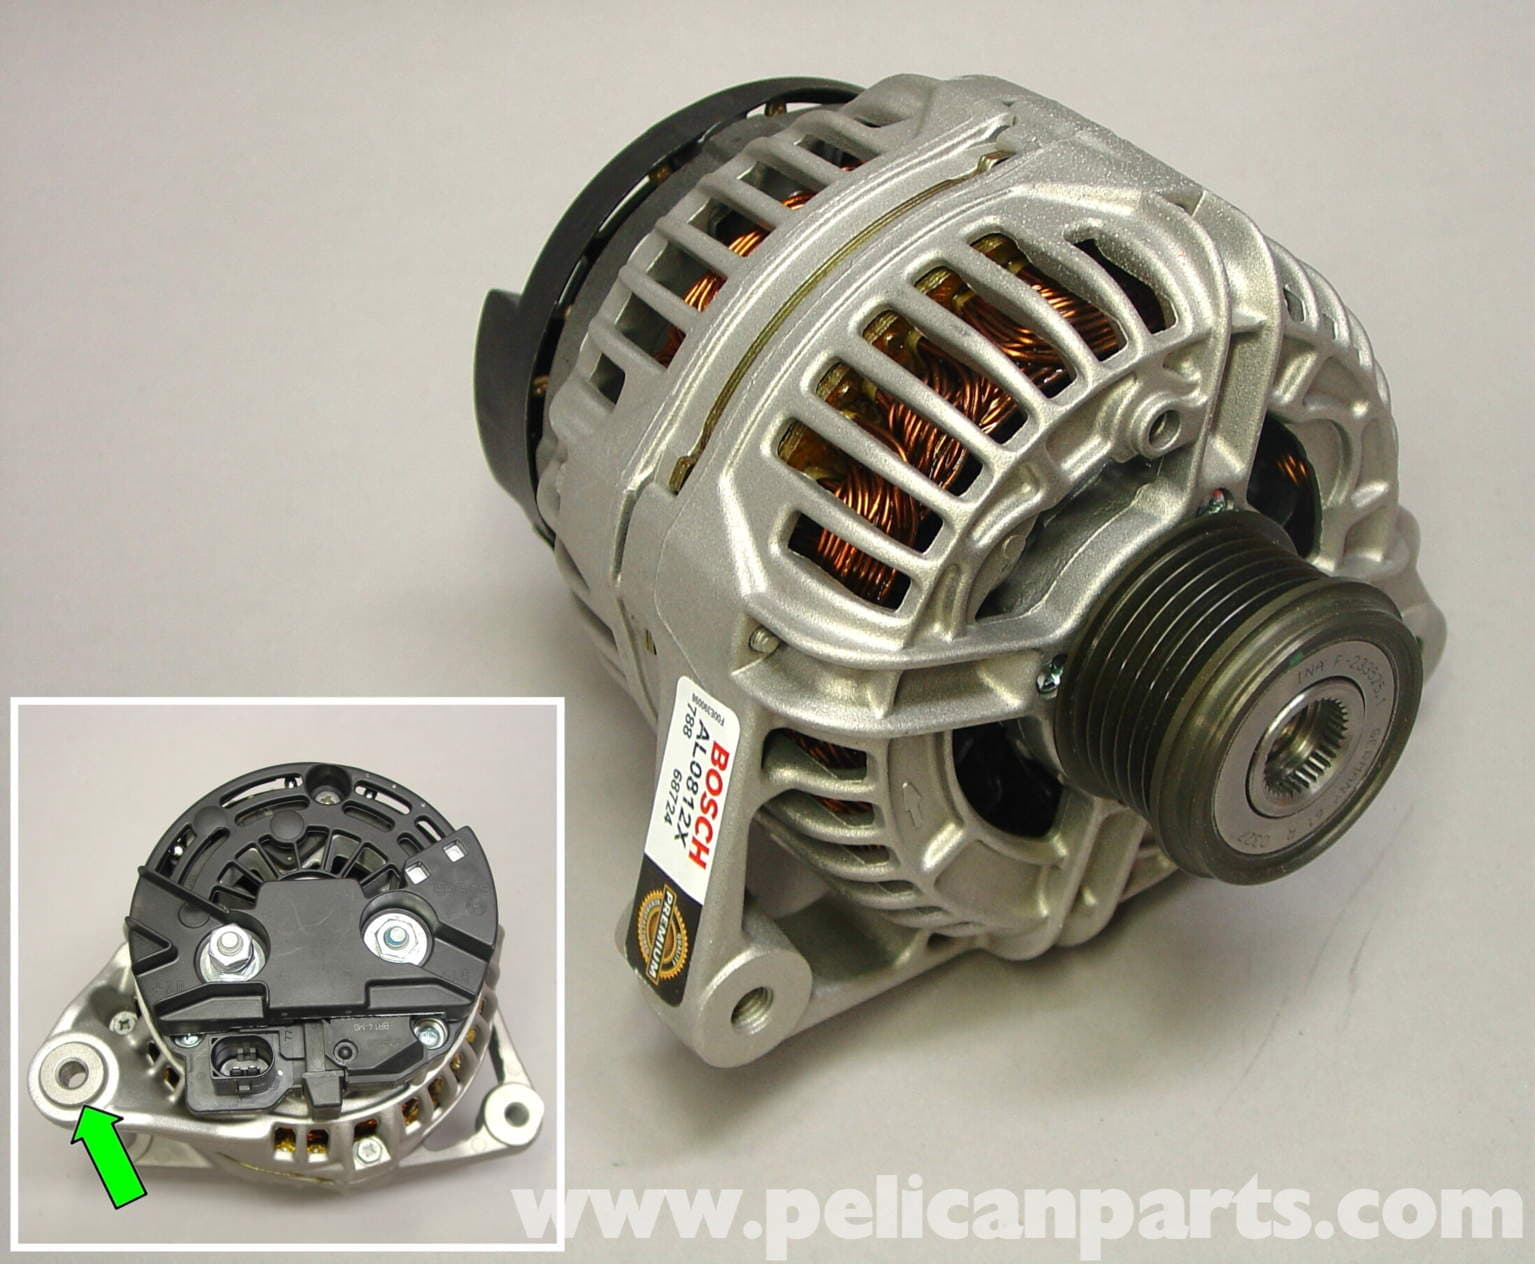 Valeo Alternator Wiring Porsche Trusted Diagrams Deutz Diagram 911 Carrera Replacement 996 1998 2005 997